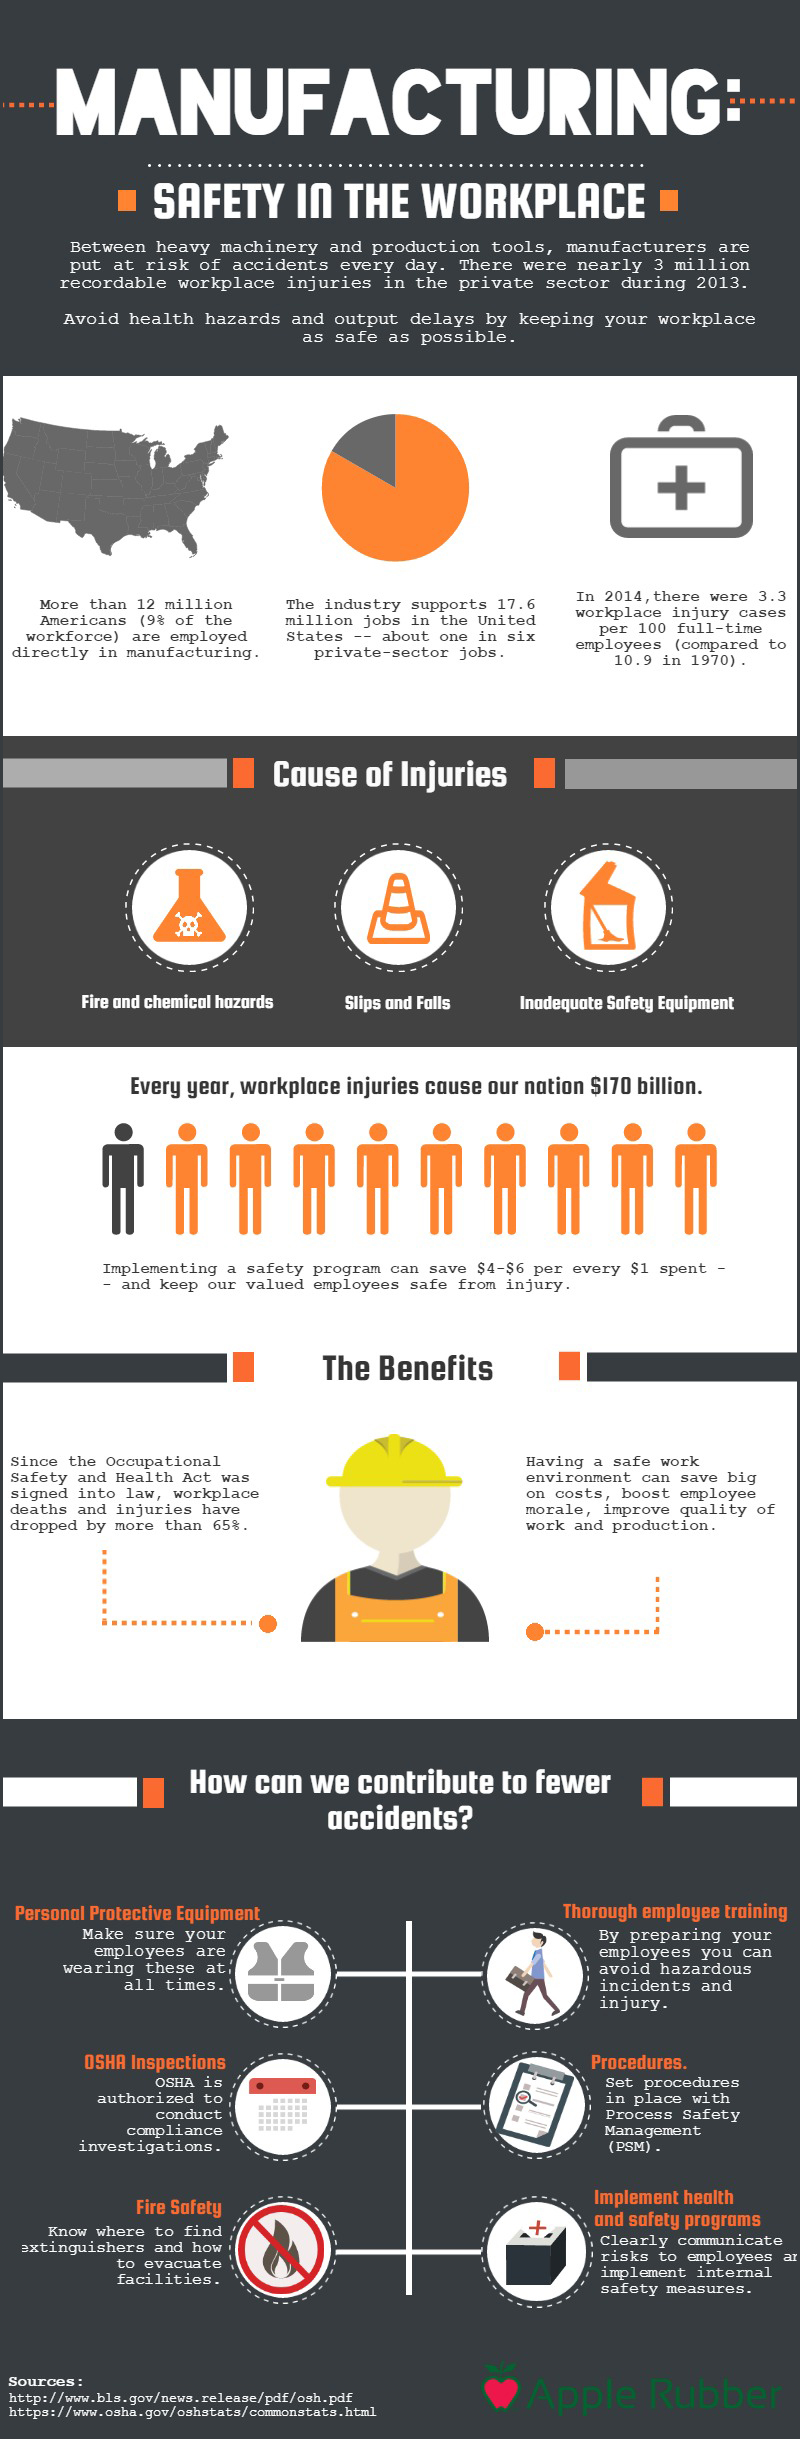 ensuring health and safety at workplaces Health and safety enforcement policy local authorities have a statutory responsibility to make adequate arrangements for the enforcement of health and safety law in relation to specified workplaces allocated to them.